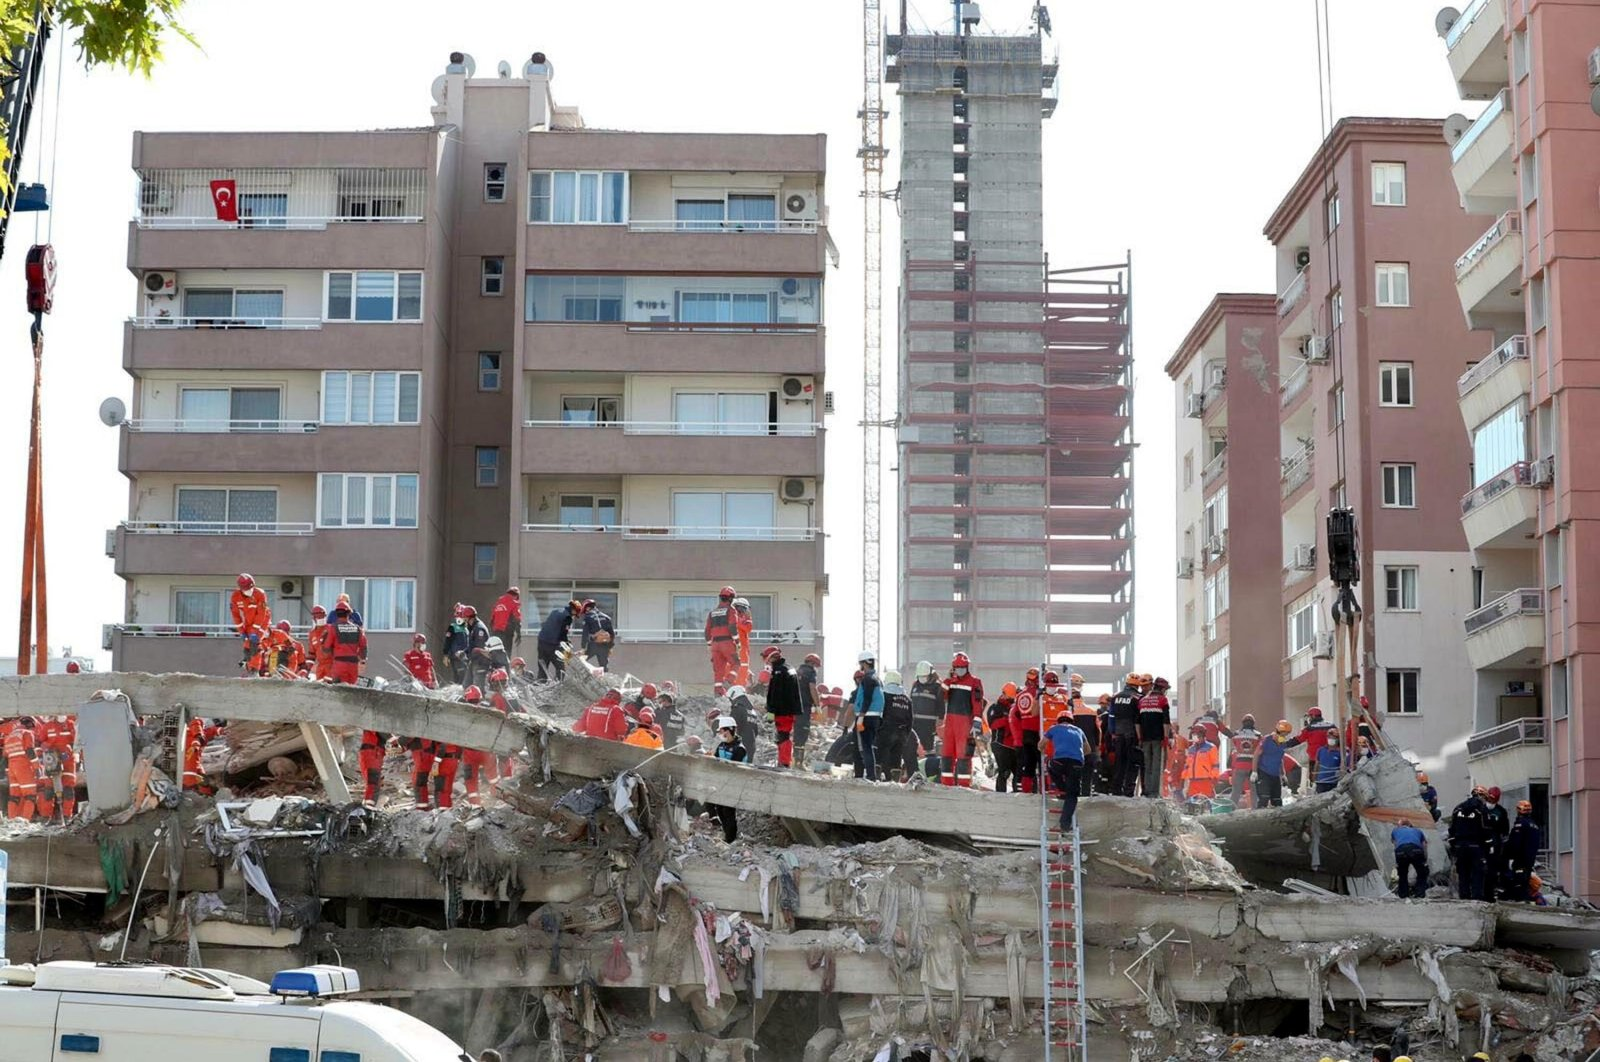 Search and rescue crews comb the rubble of a building after an earthquake, in Izmir, western Turkey, Oct. 30, 2020. (DHA PHOTO)